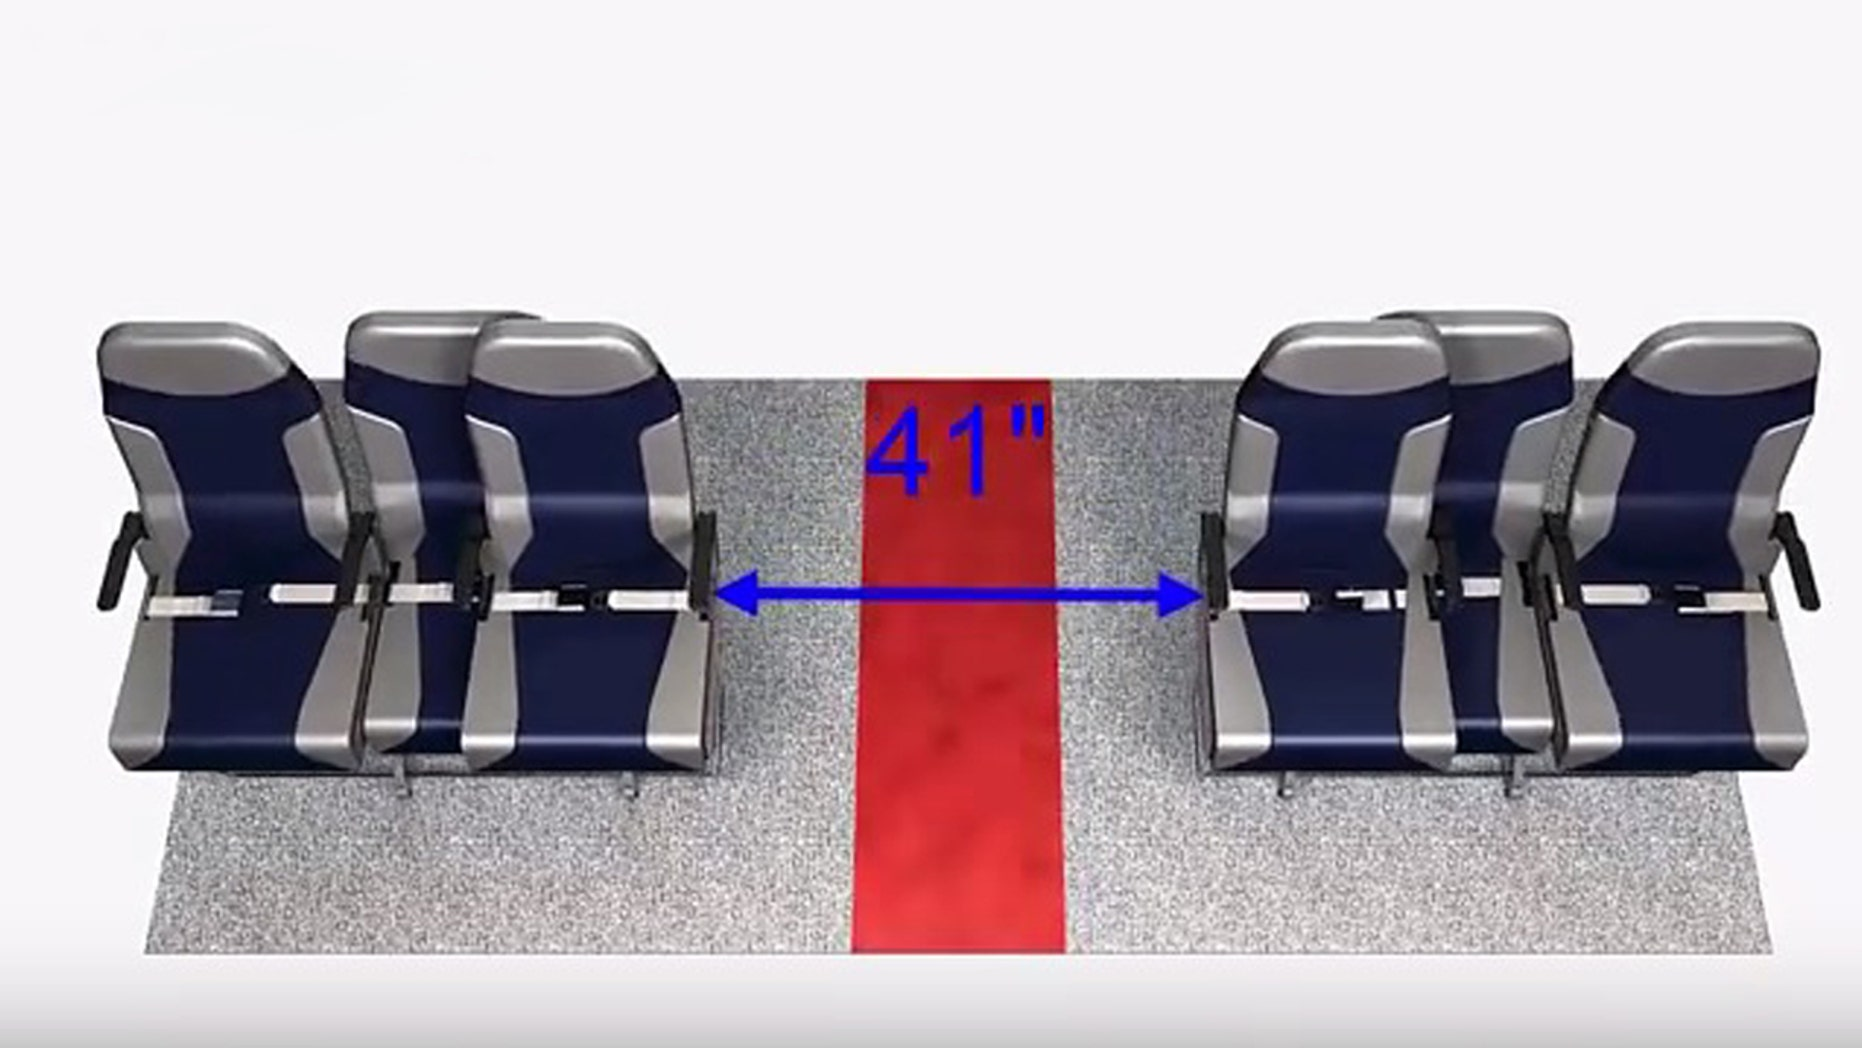 The aisle seats glide over to make room during boarding and deplaning.